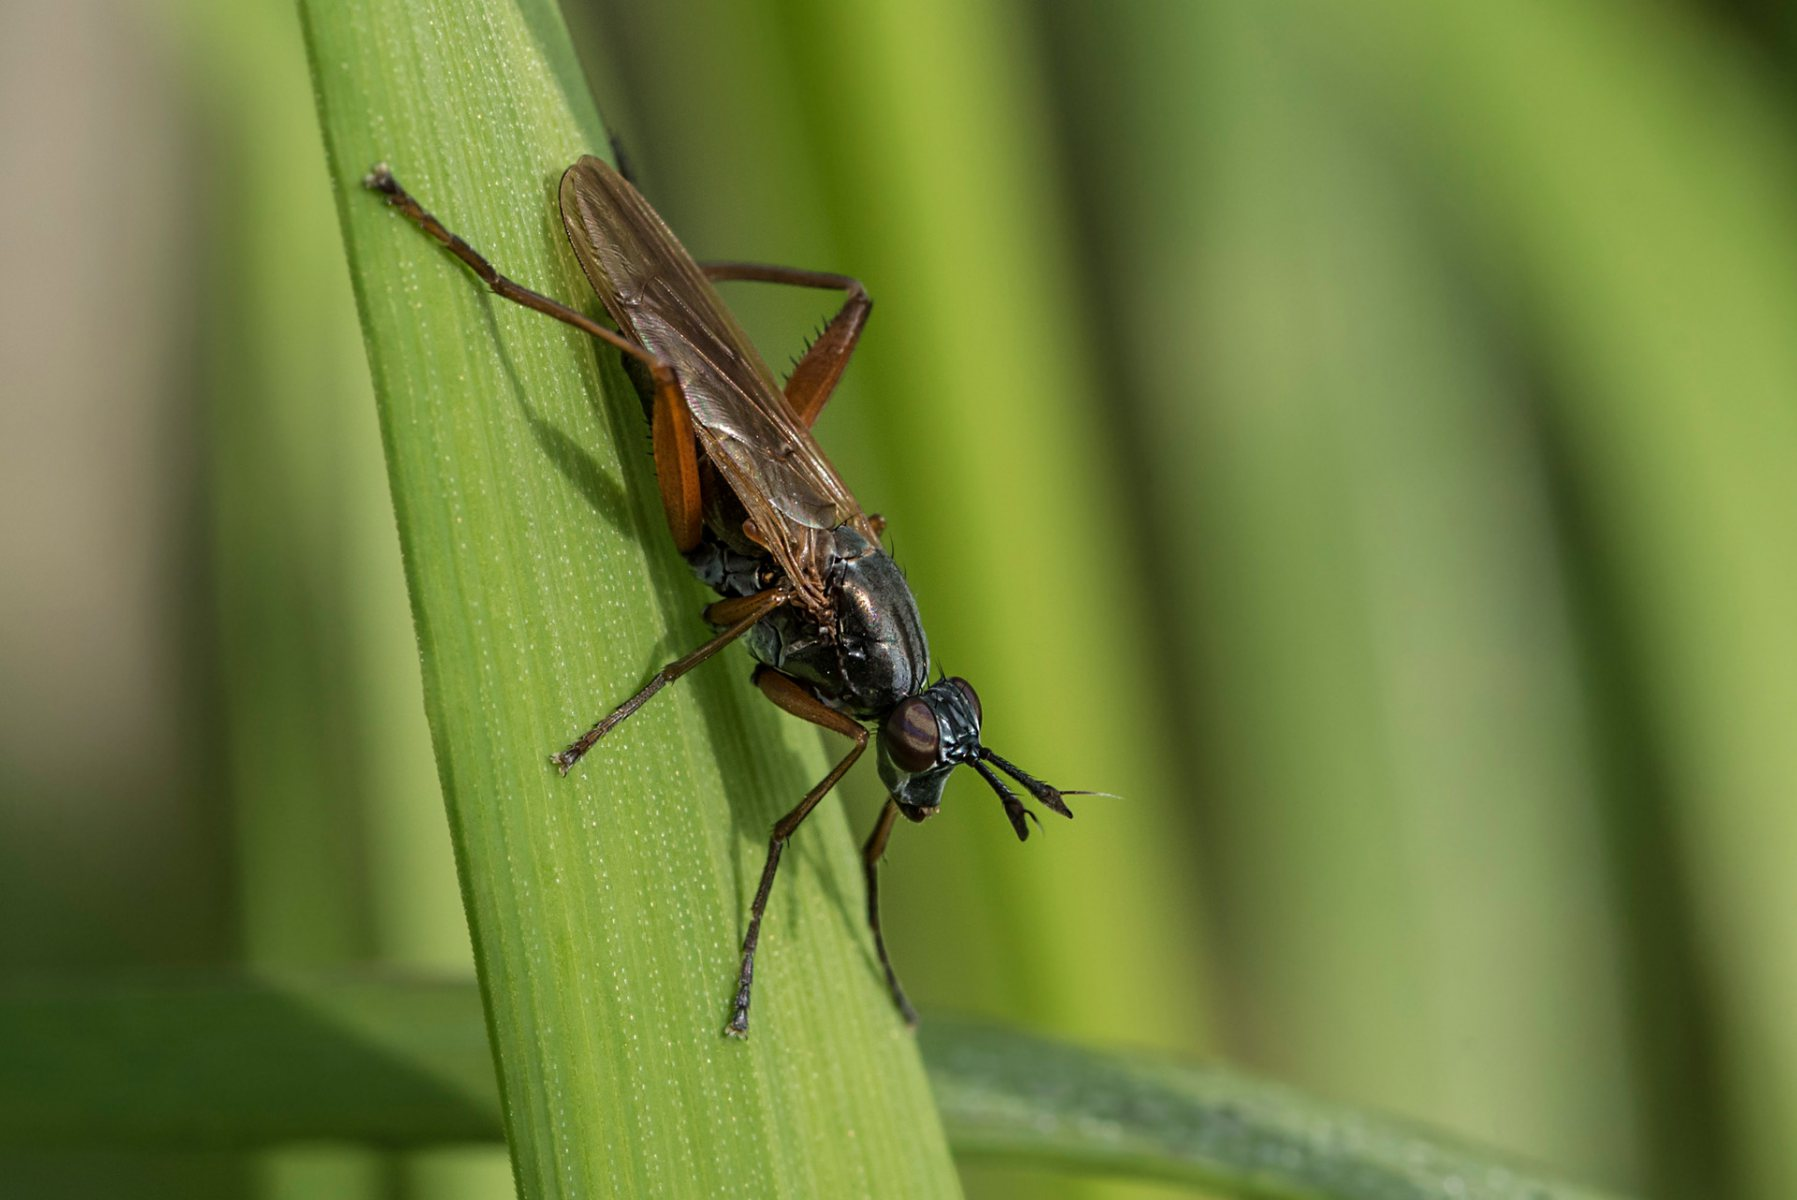 298_Insect